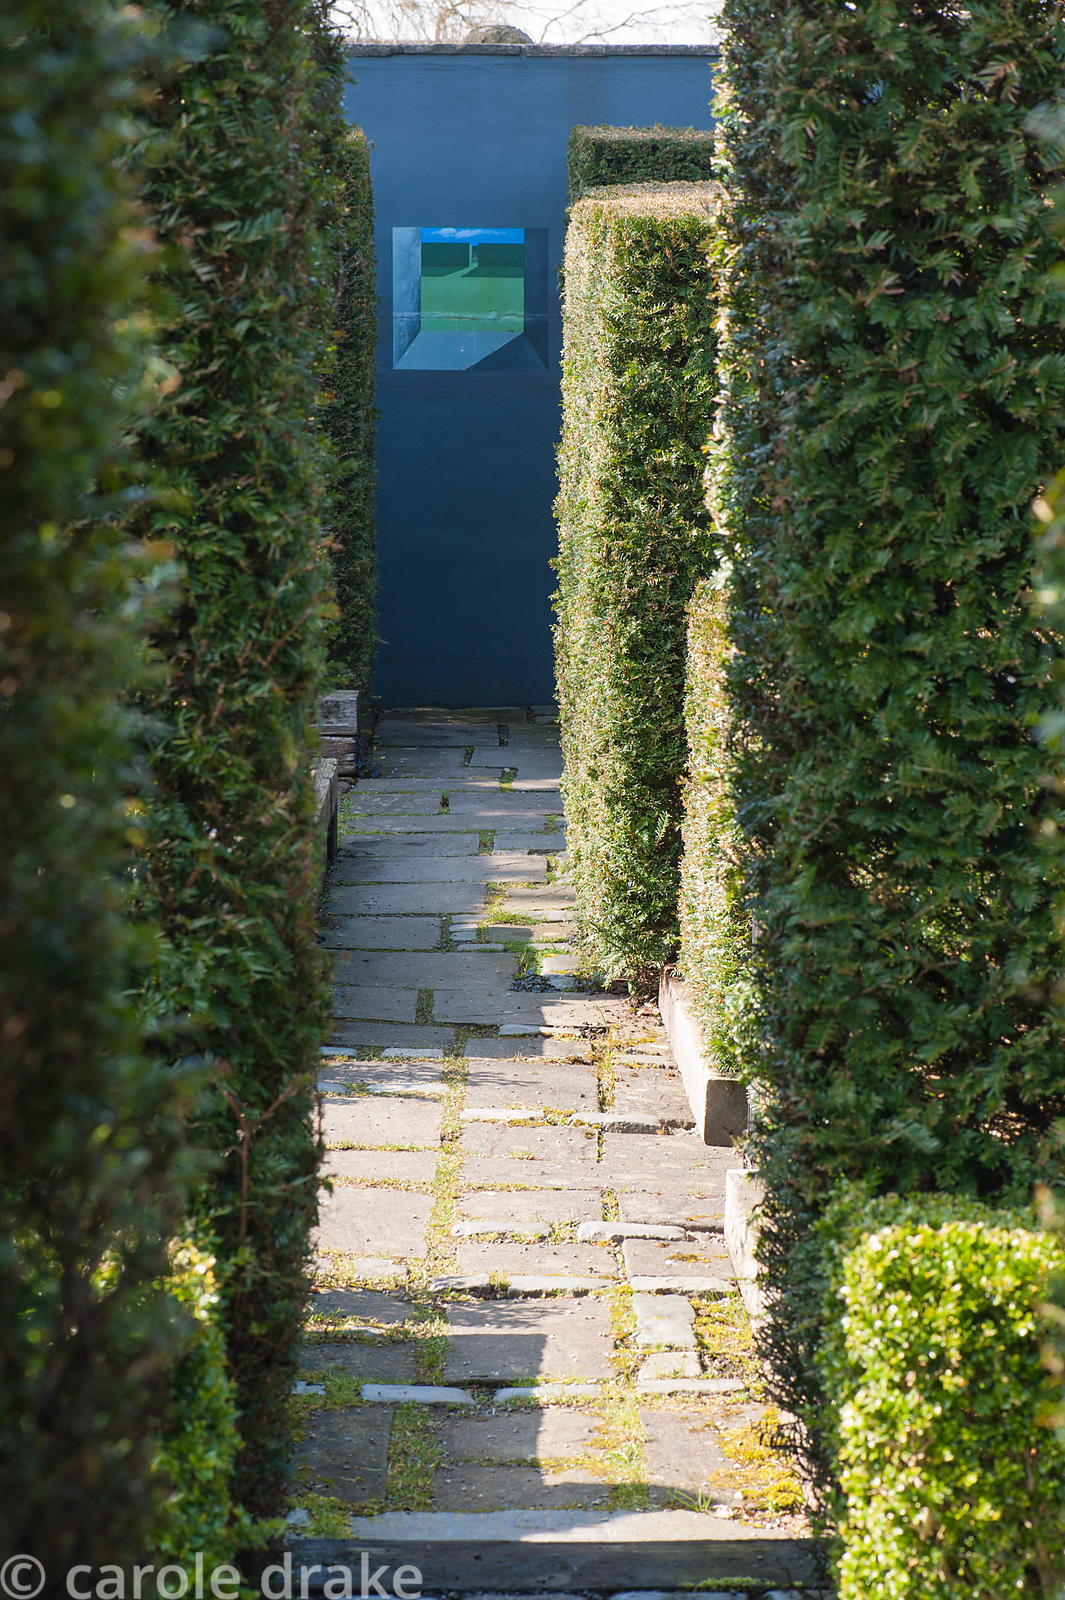 Yew hedges frame a view to a small painted image on a dark grey wall in a formal garden.